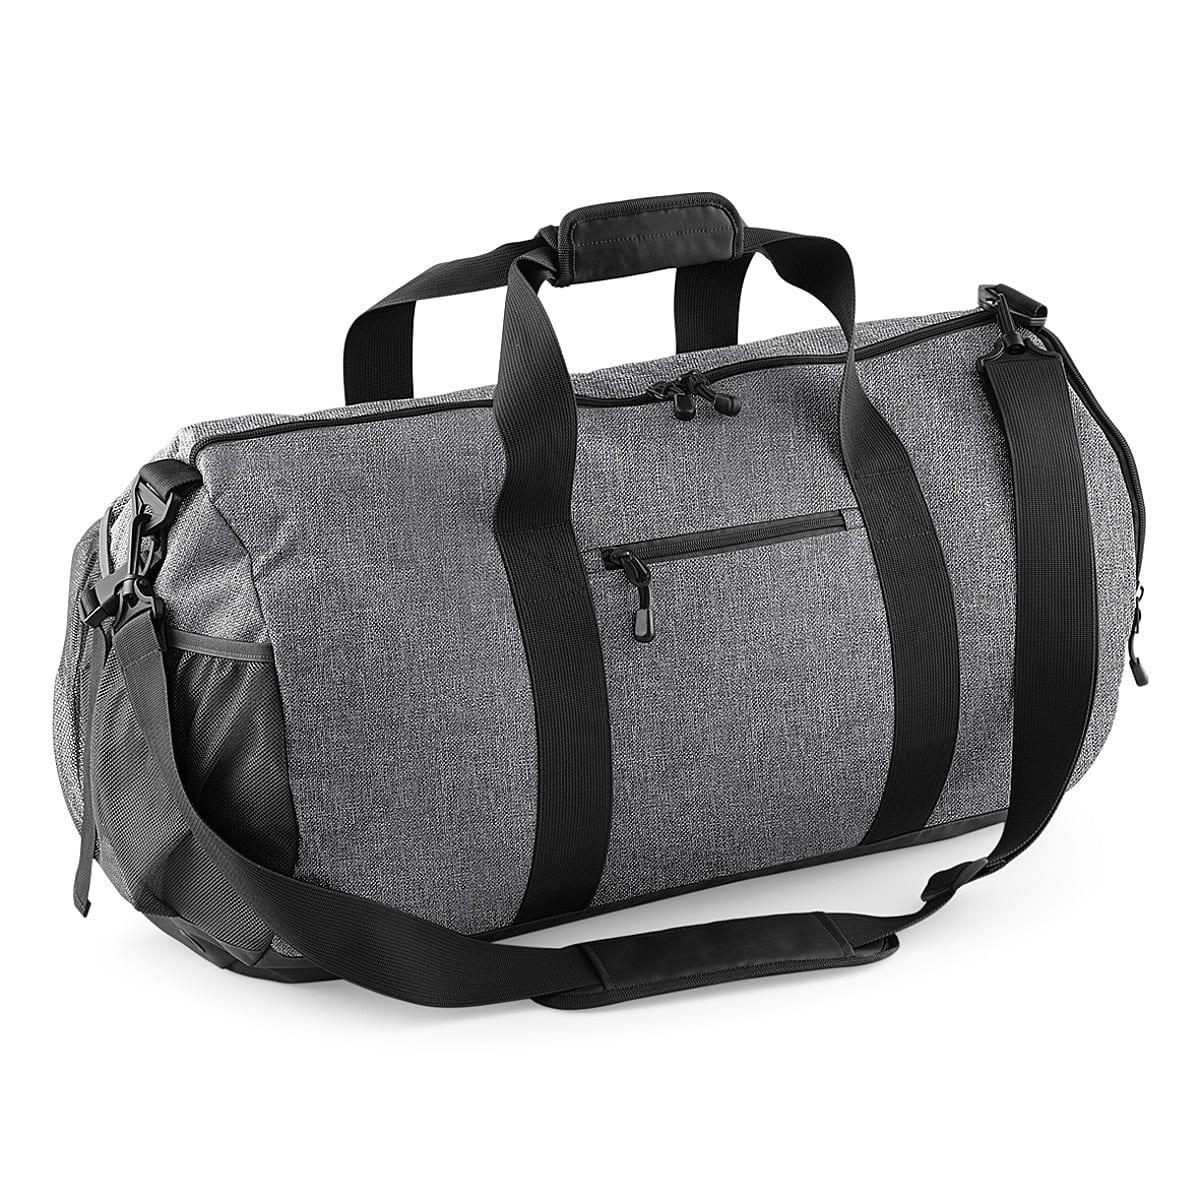 Bagbase Athleisure Kit Bag in Grey Marl (Product Code: BG546)